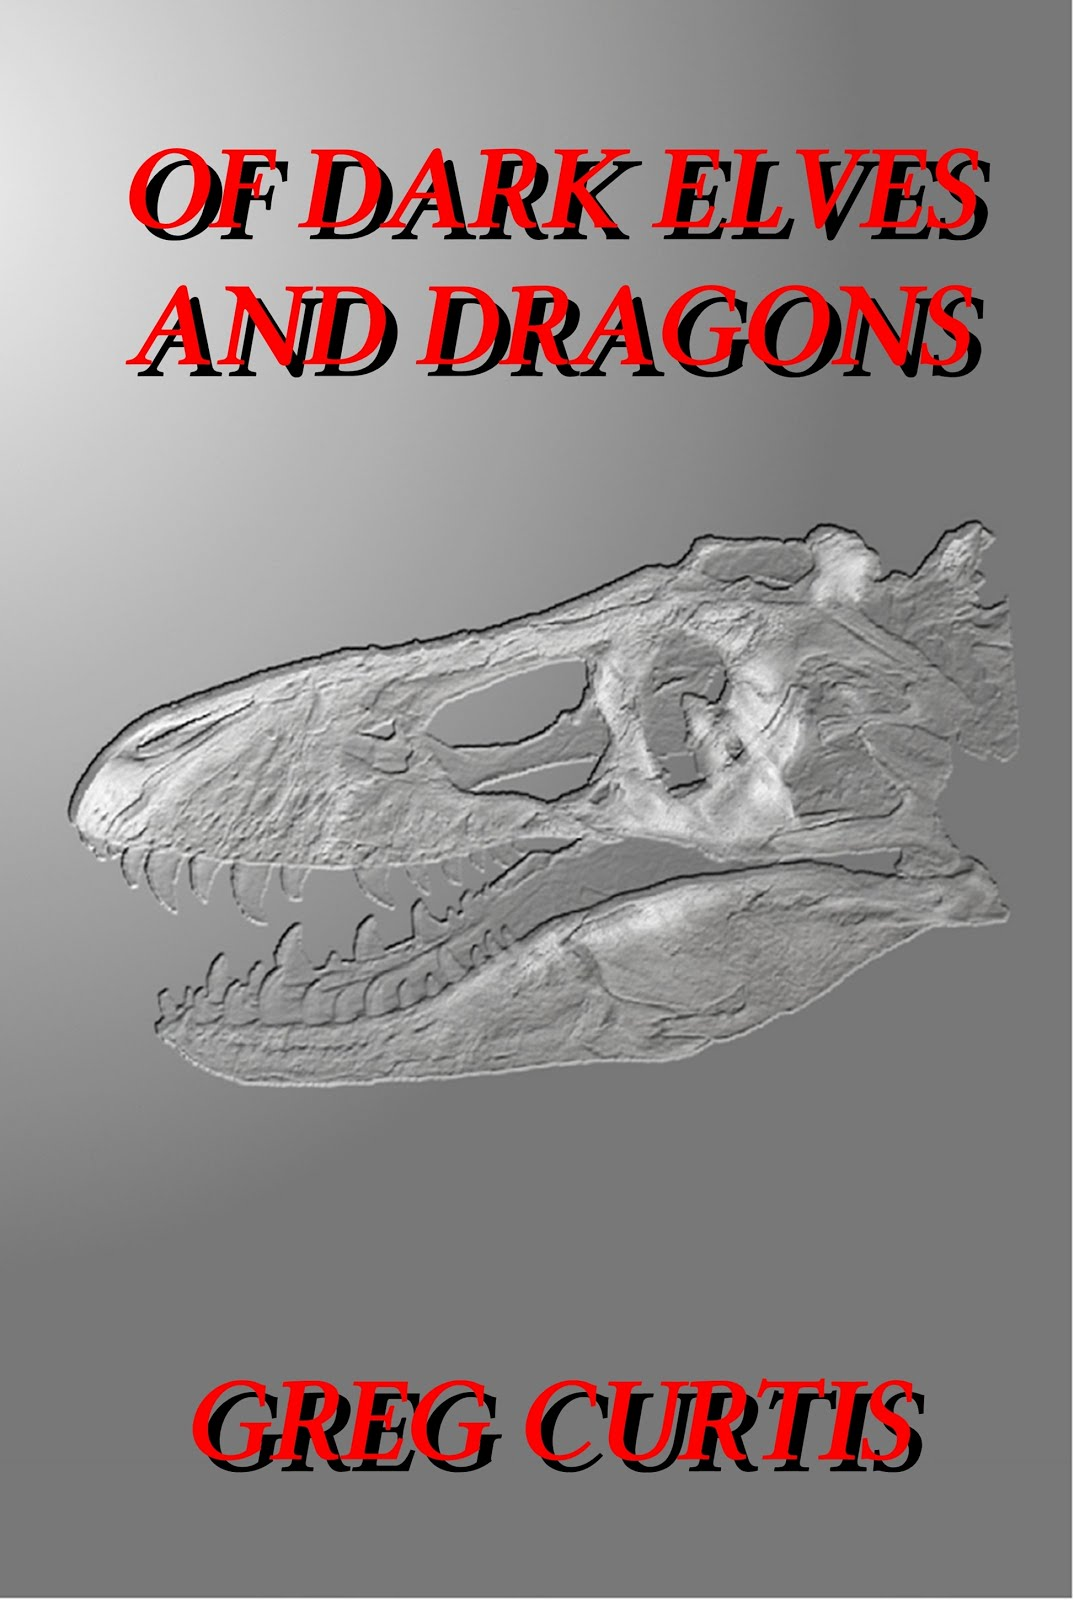 Of Dark Elves And Dragons